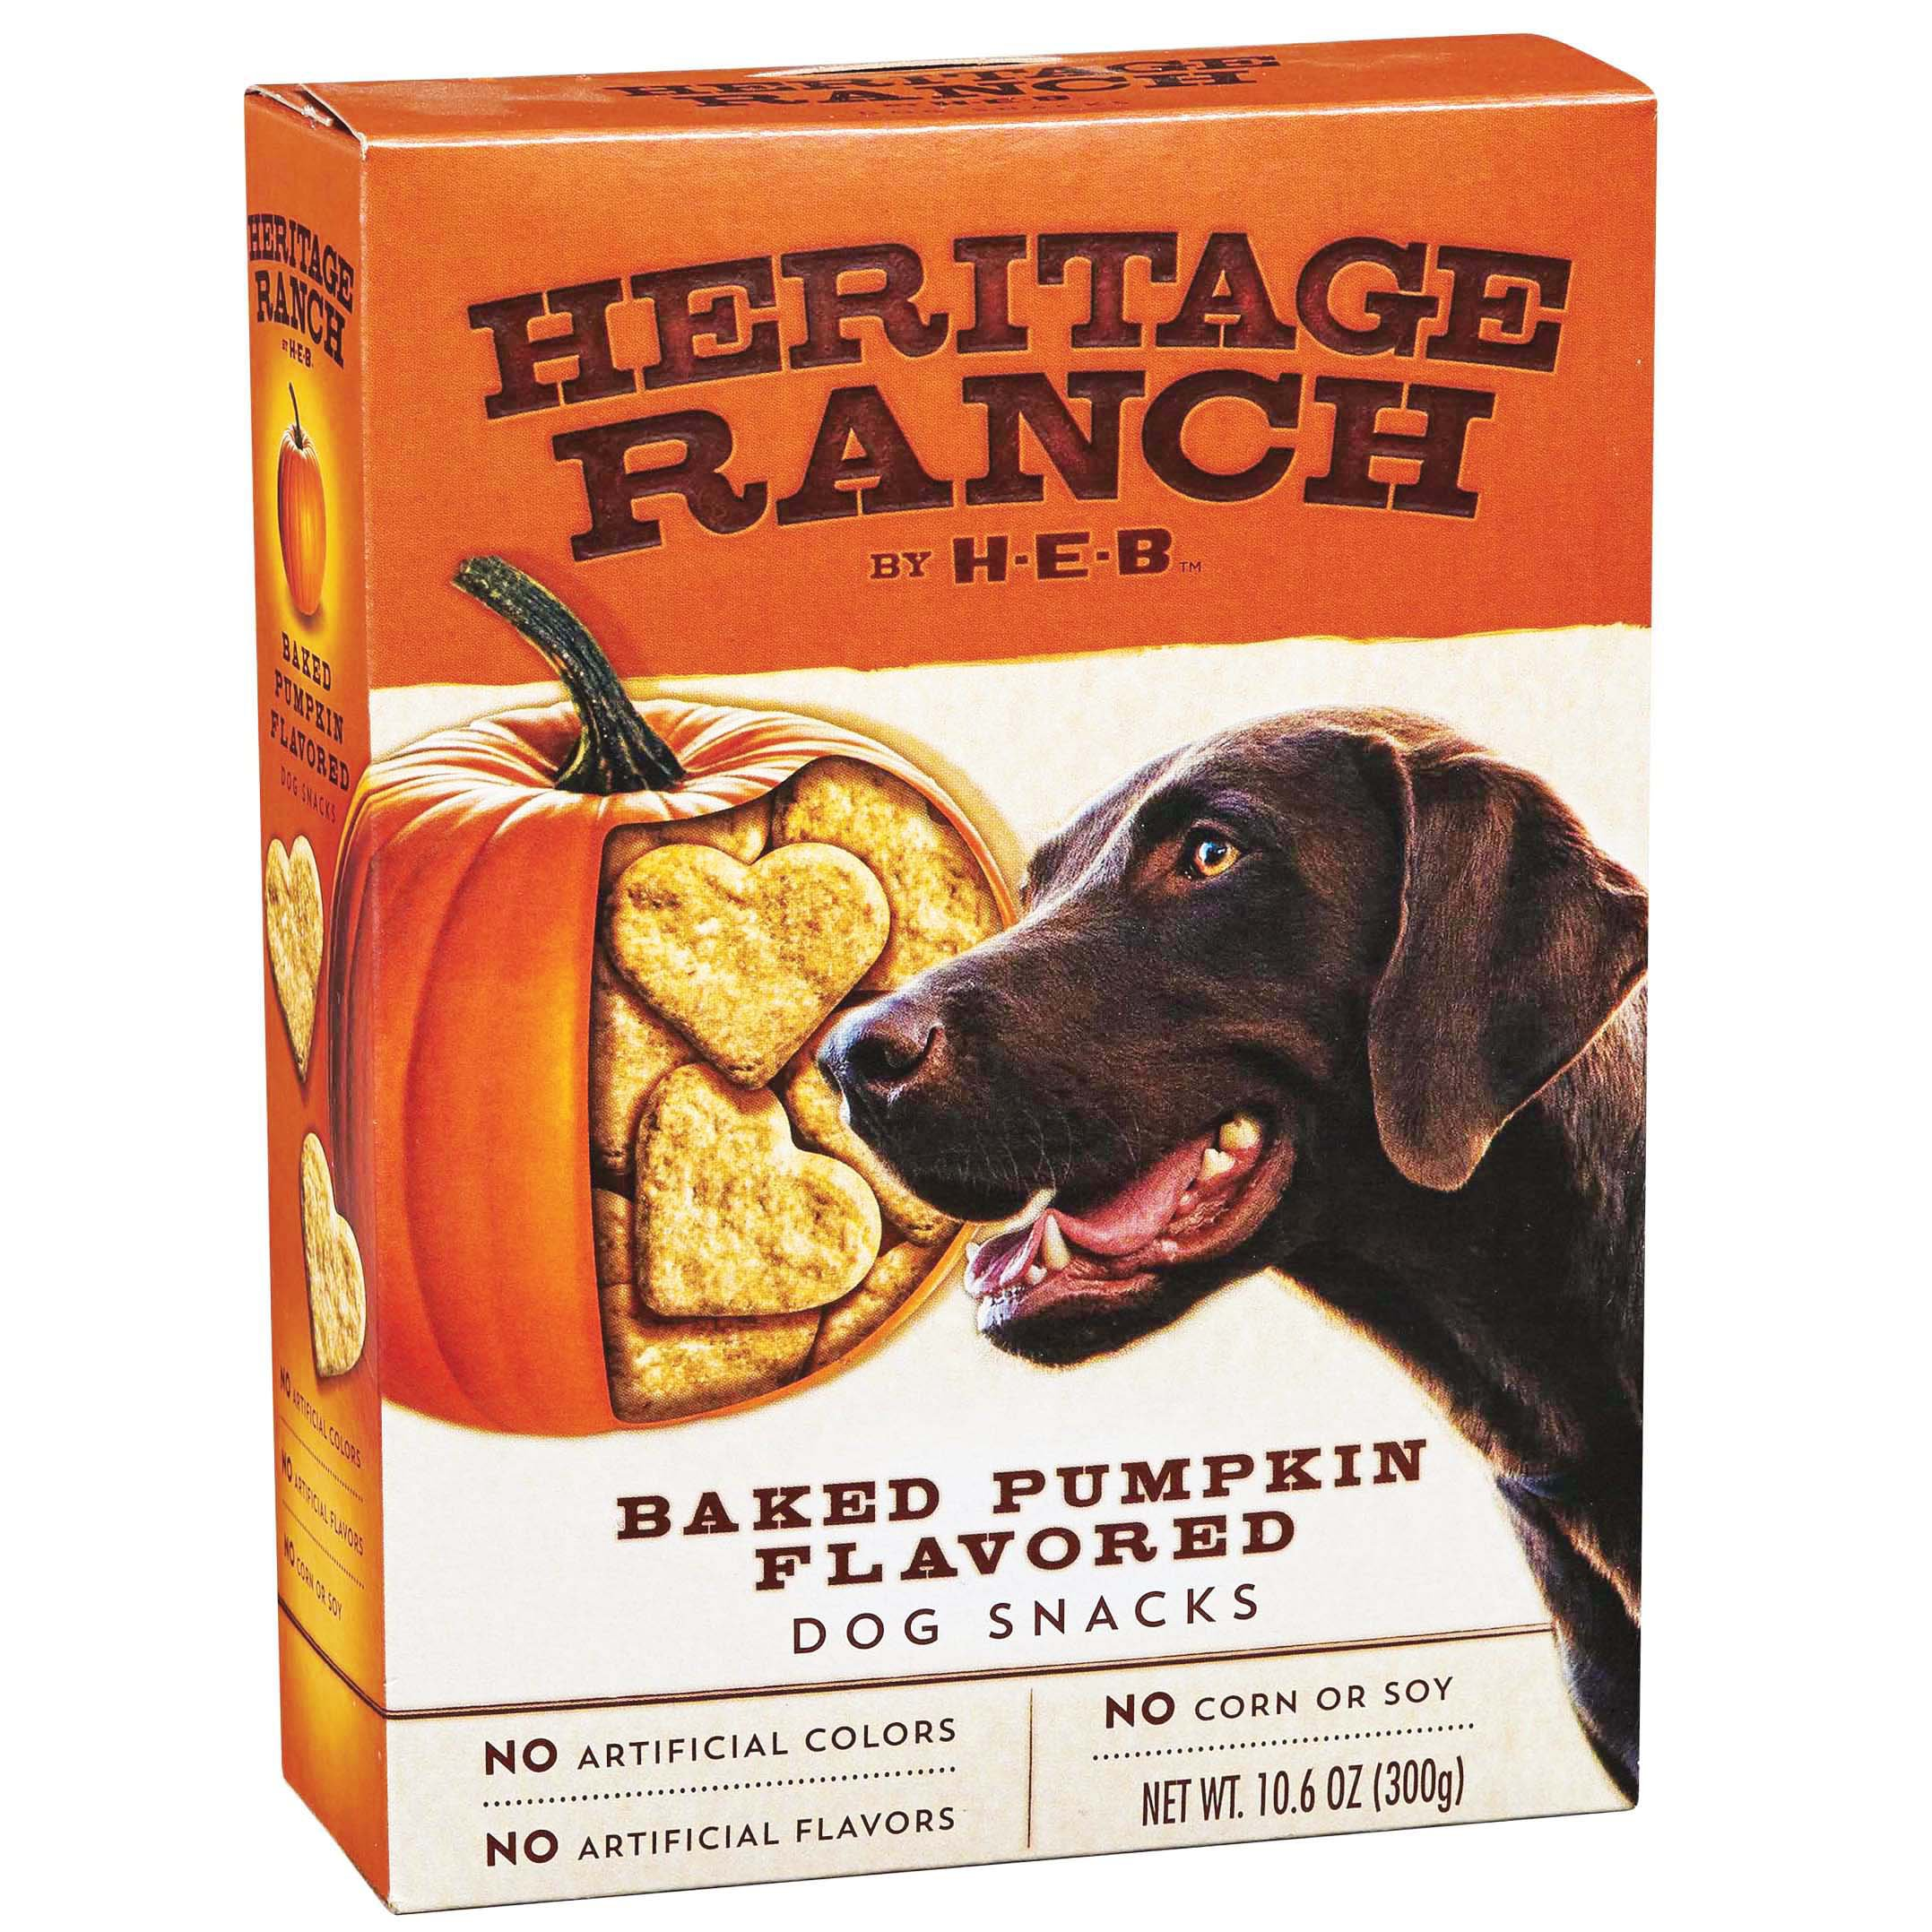 Country Kitchen Dog Treats H E B Heritage Ranch Dog Snacks Baked Pumpkin Shop Biscuits At Heb